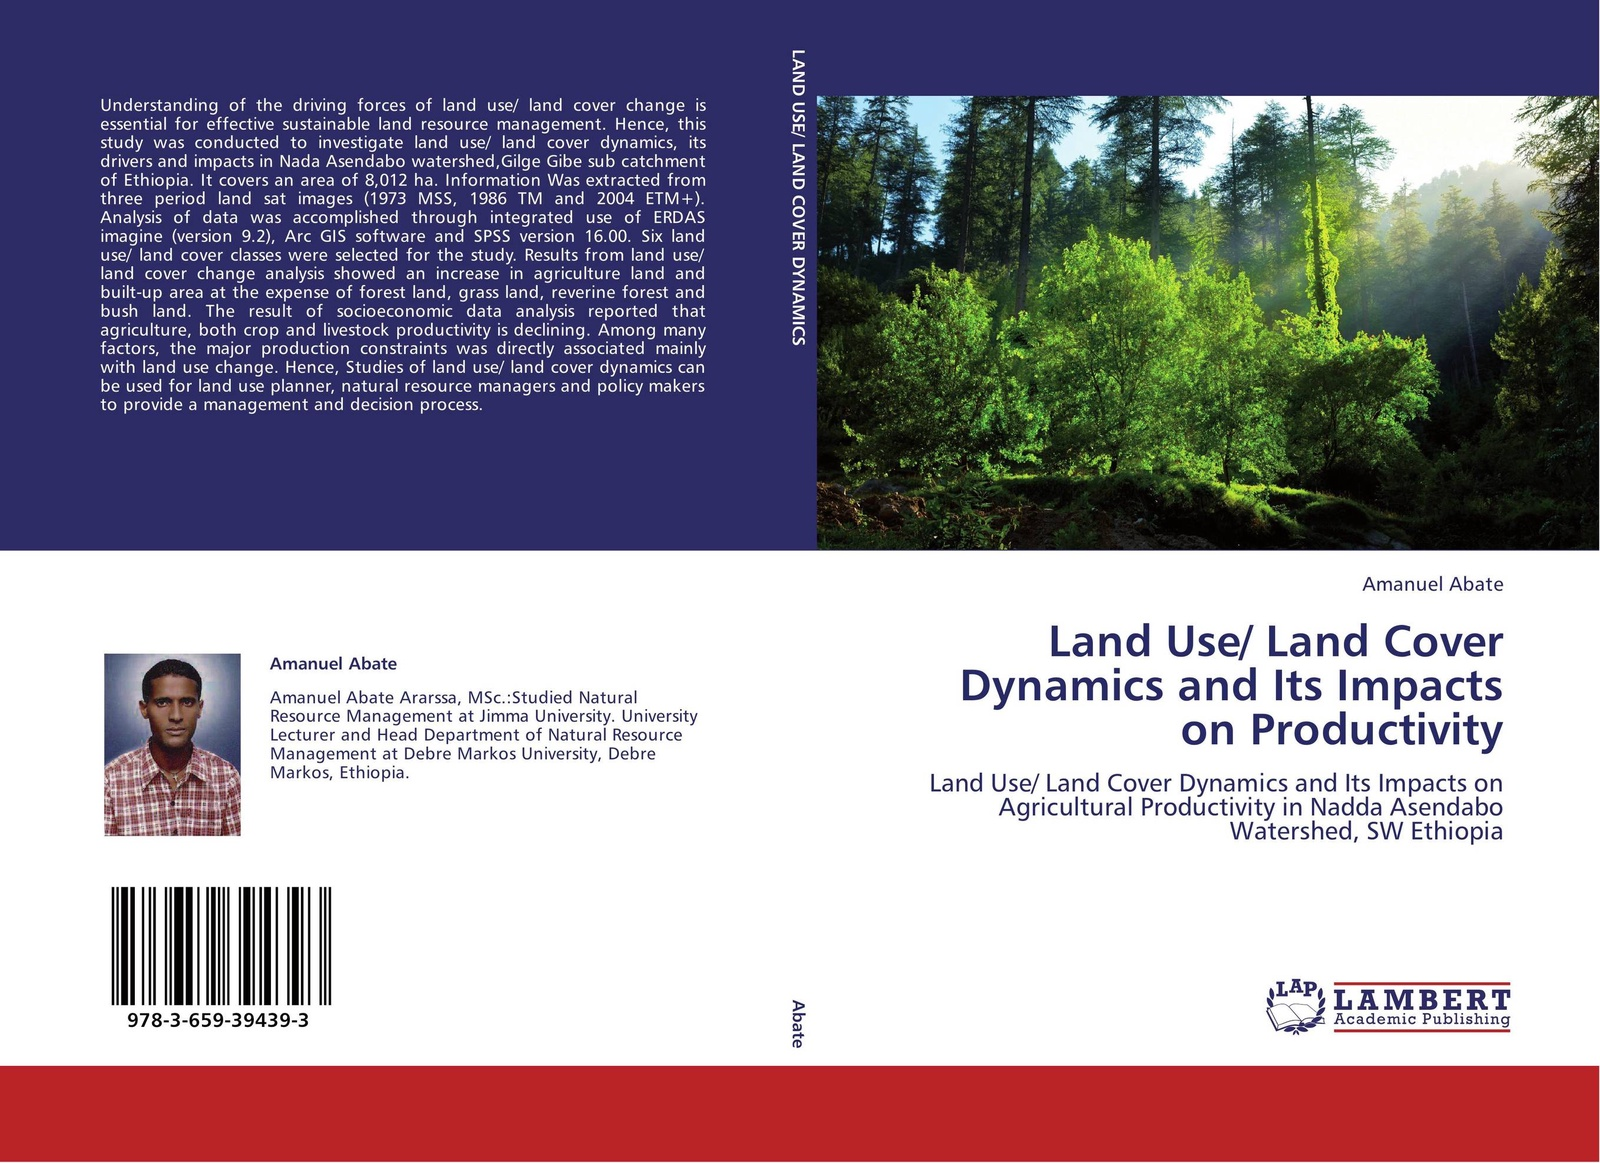 Amanuel Abate Land Use/ Land Cover Dynamics and Its Impacts on Productivity tunisia the land of handcraft tunesien das land des kunsthandwerks